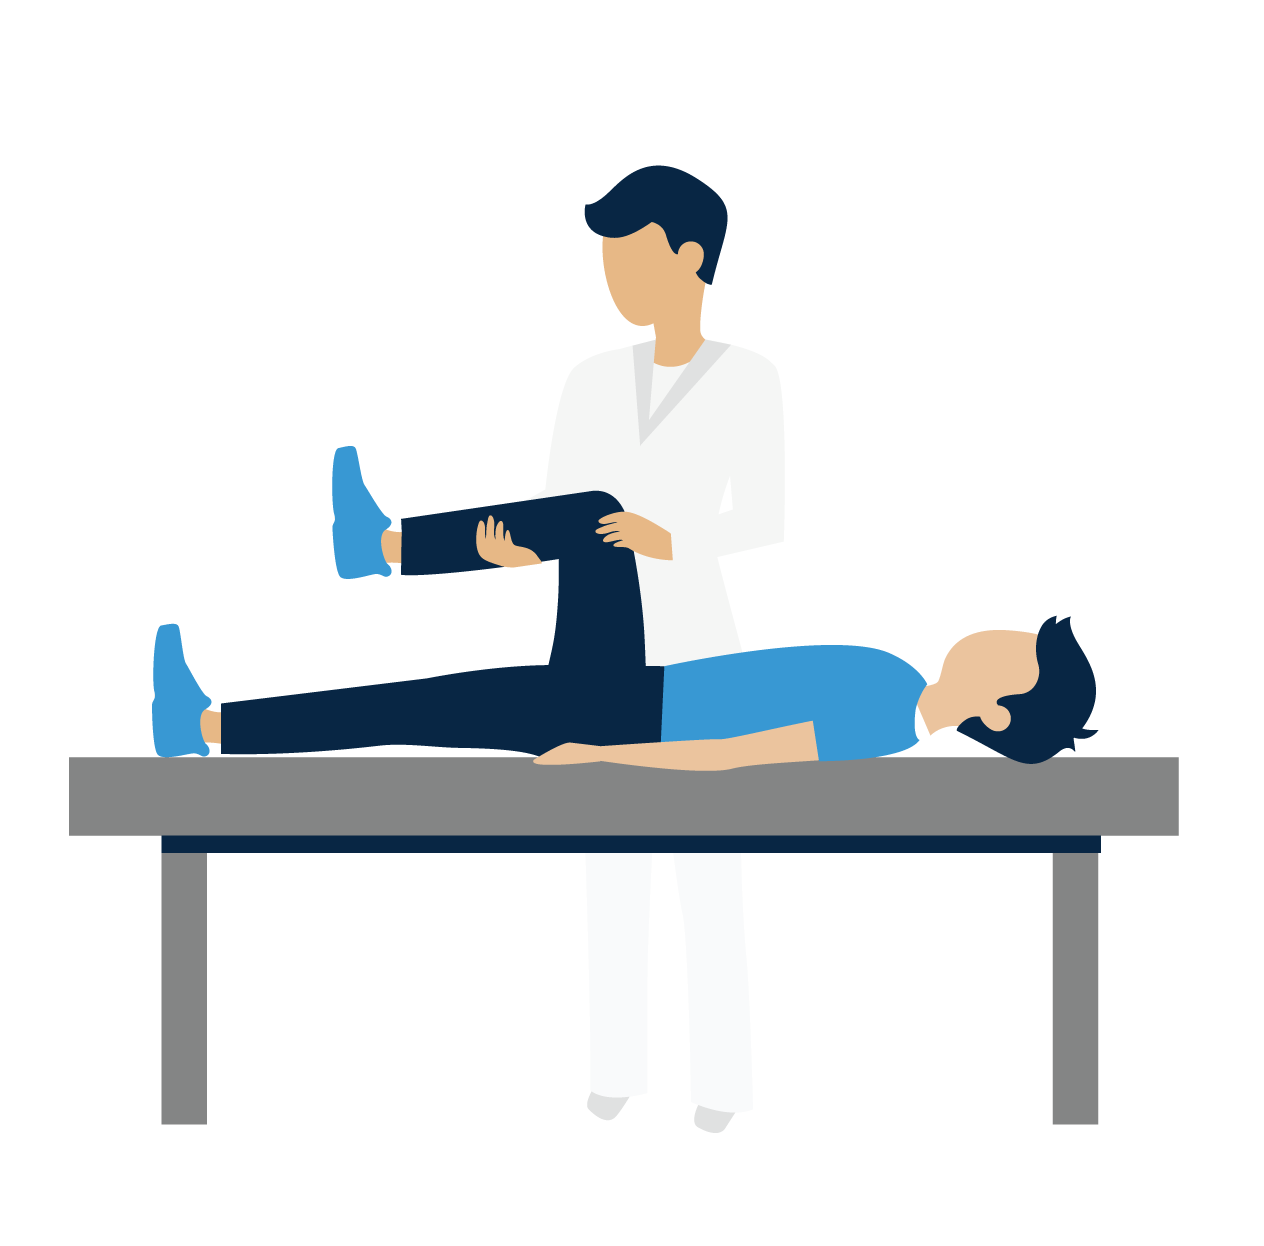 OT working with patient on the table